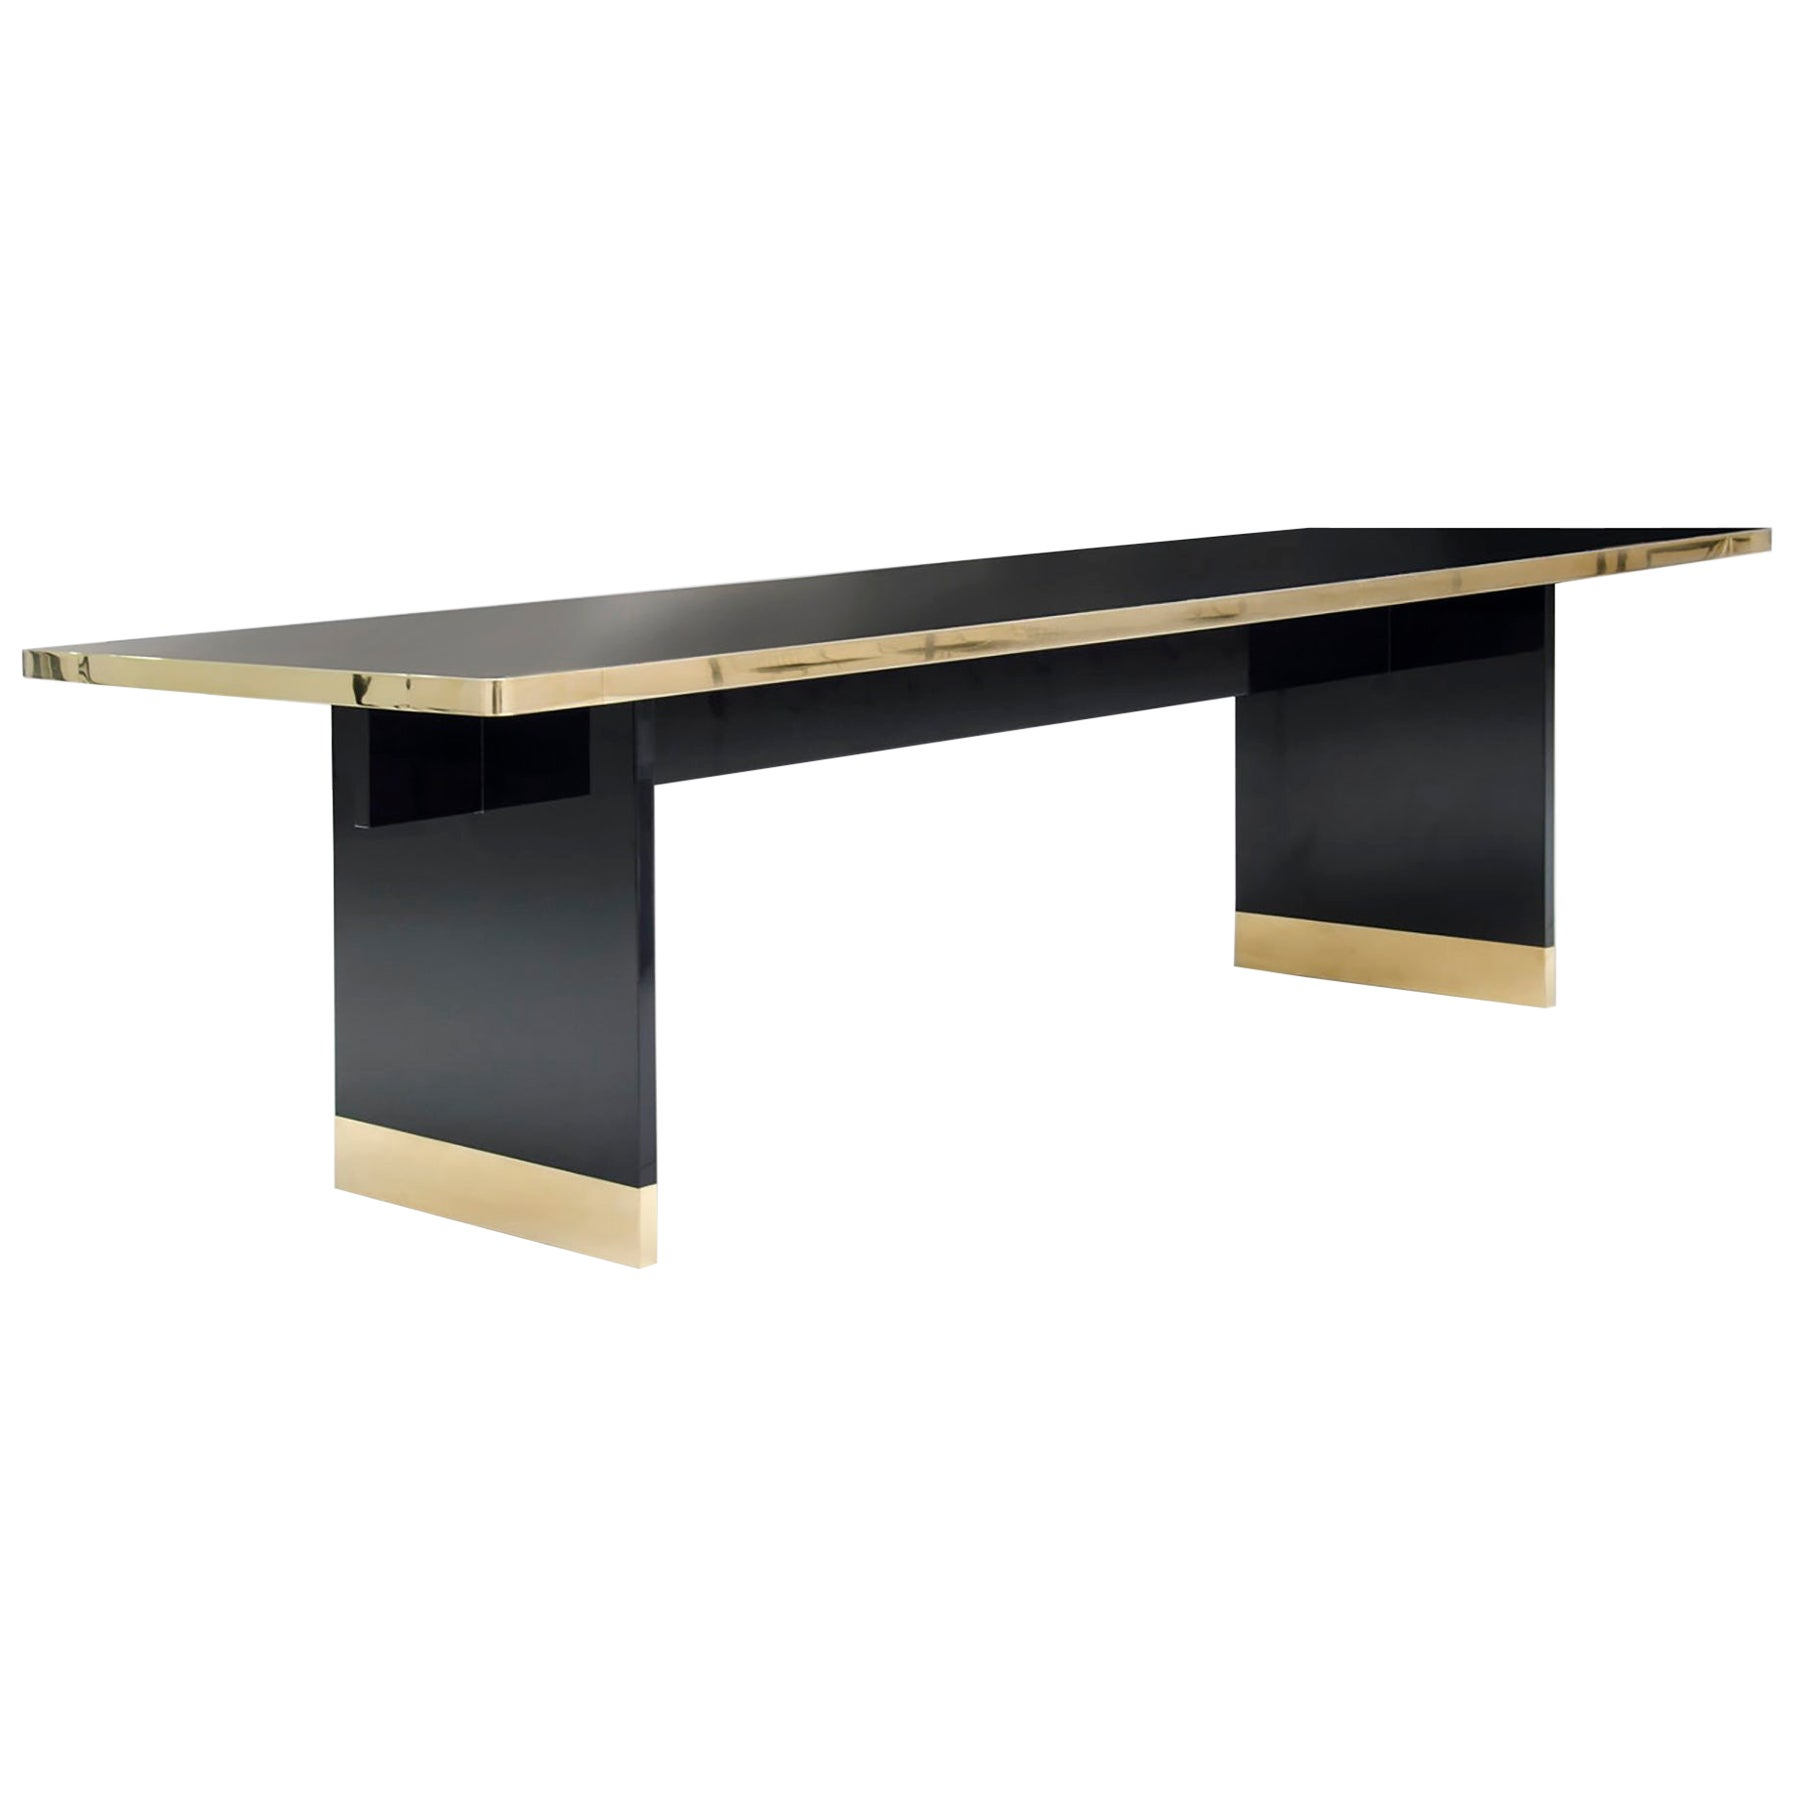 Winslow Dining Table in Brass and Lacquered Wood and Glass Top Contemporary